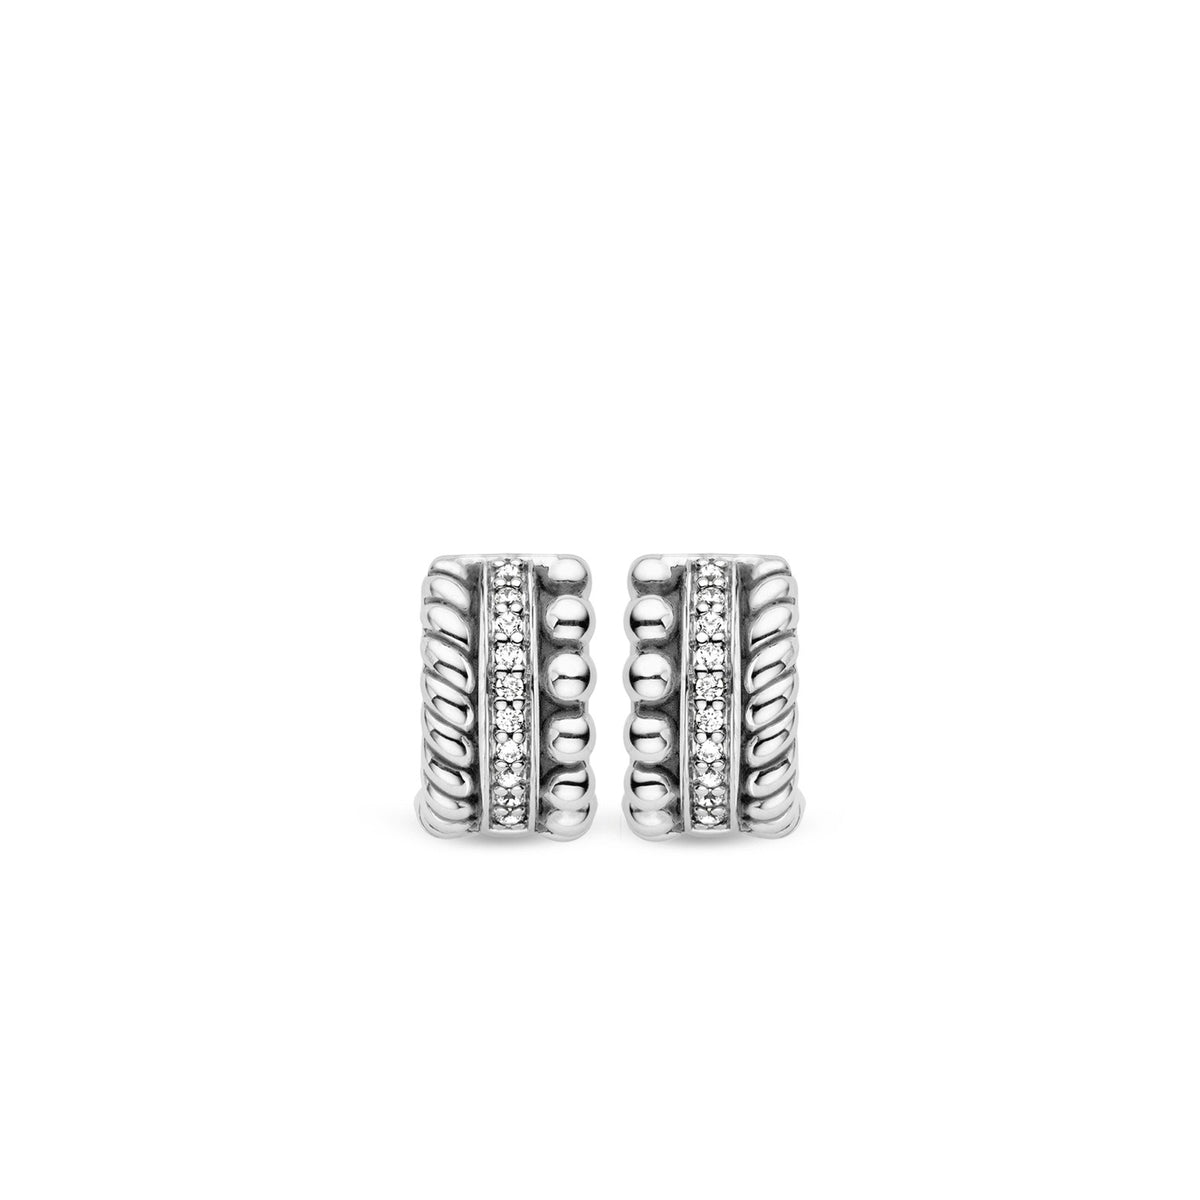 TI SENTO Sterling Silver Multi Row Huggies with Cubic Zirconia